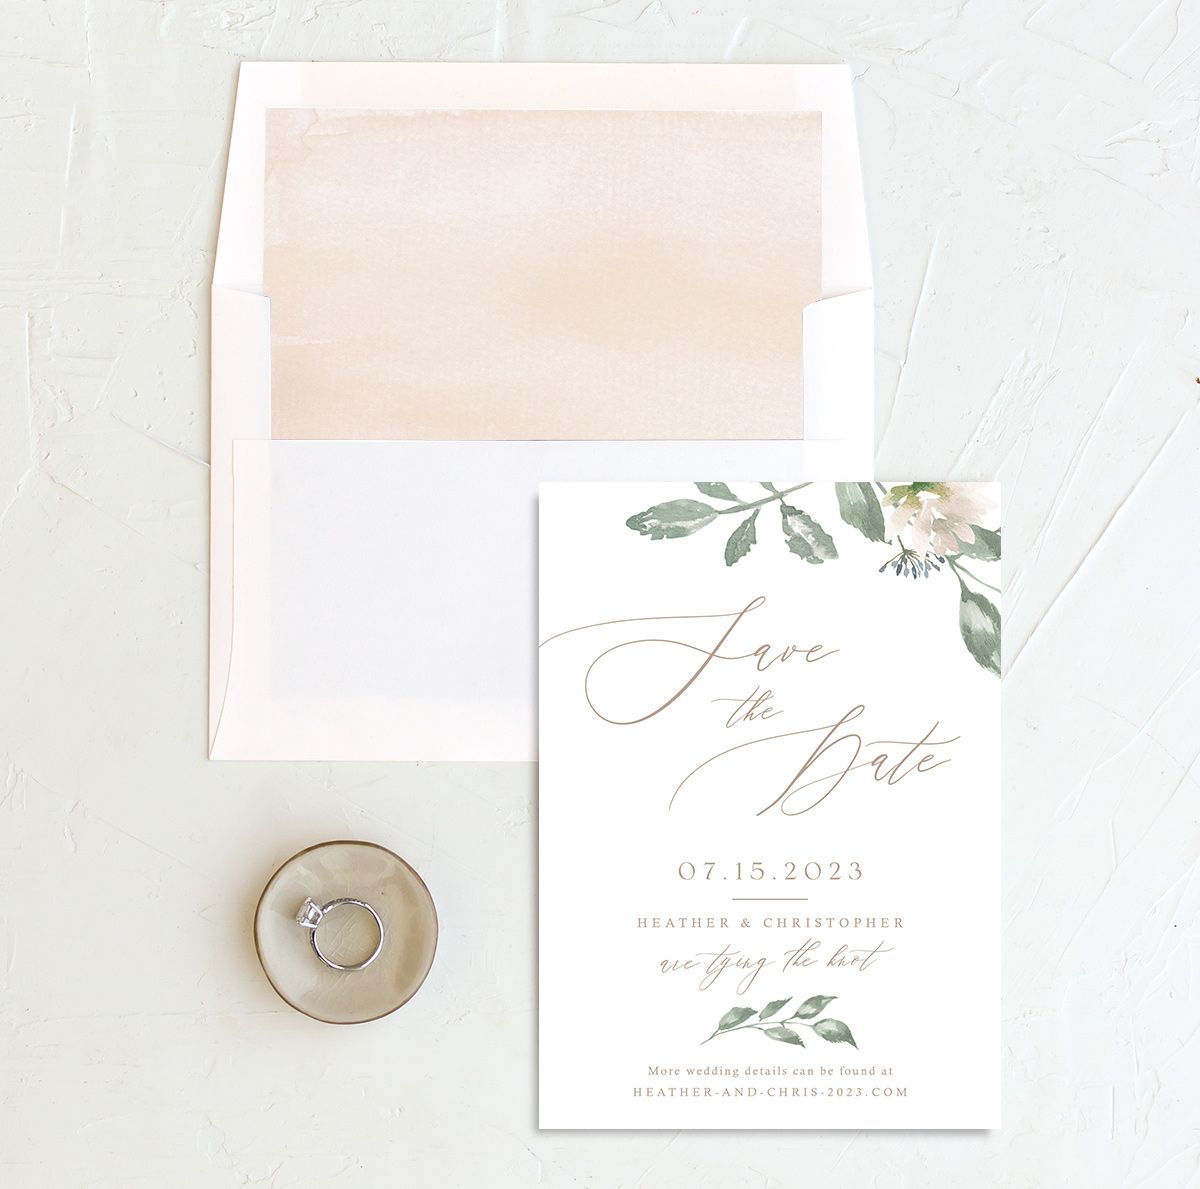 Dusted Calligraphy Wedding Save the Date Card Front  and Envelope Liner Pink